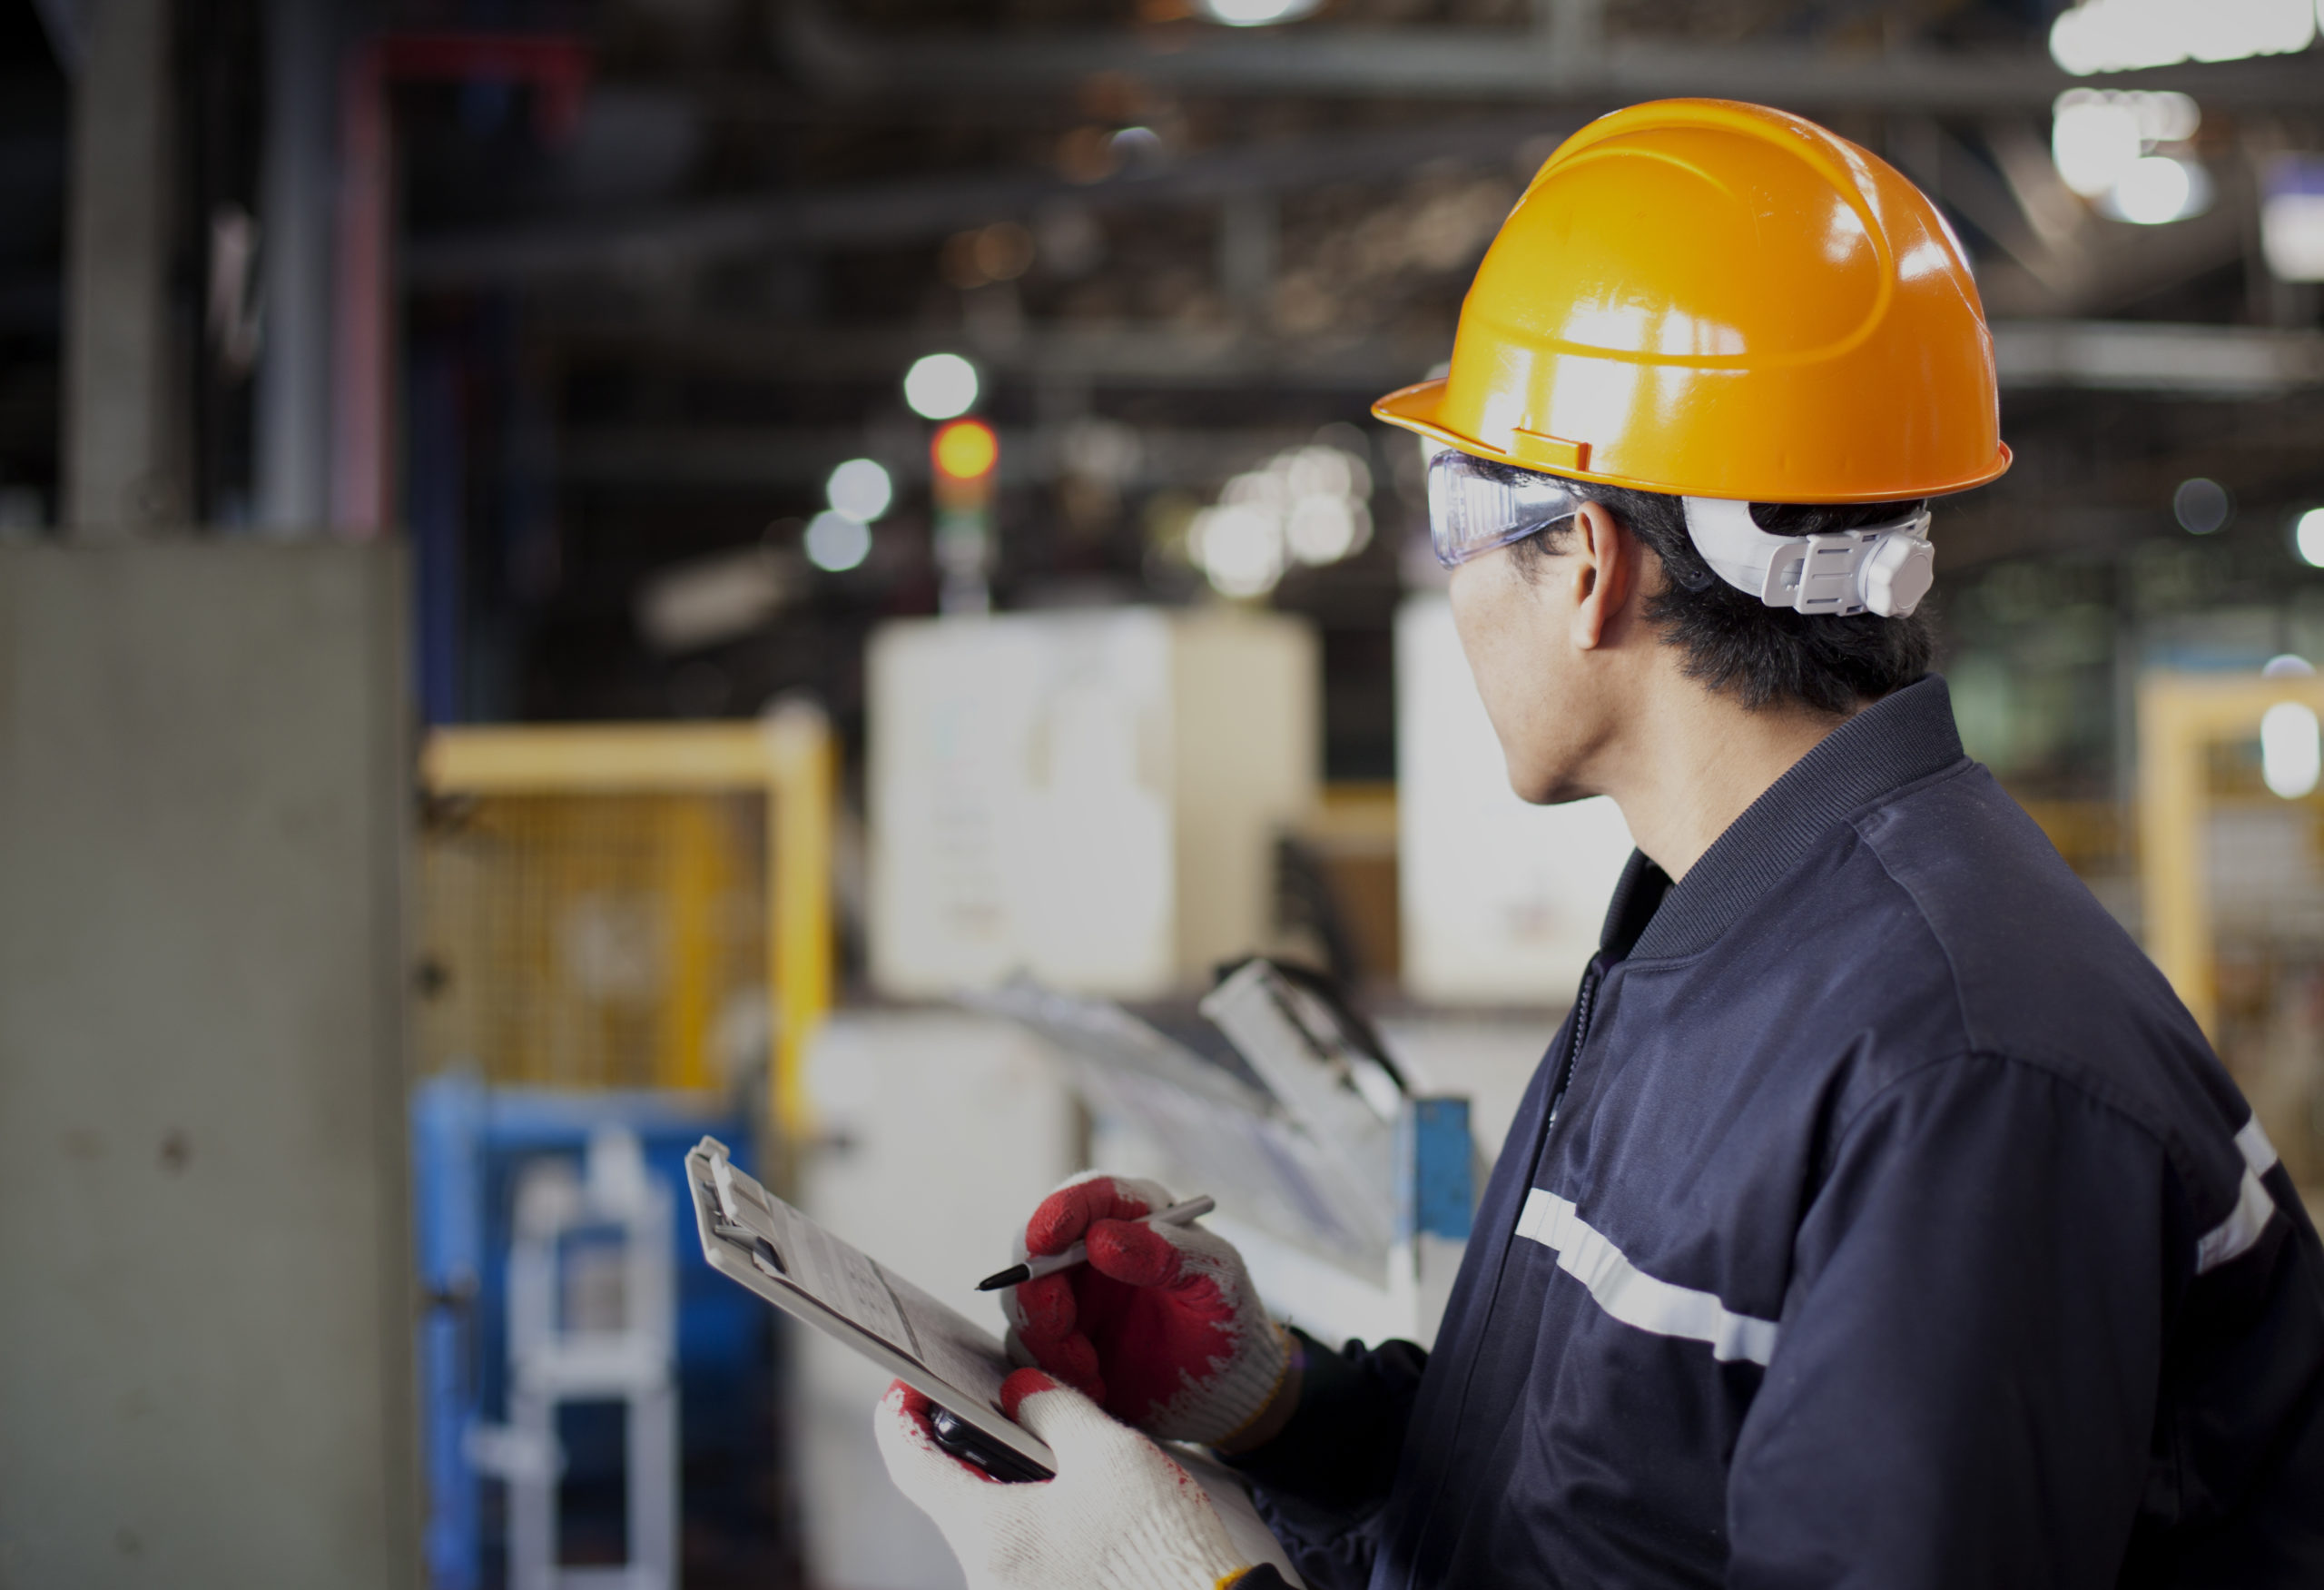 Prioritizing Workplace Safety in 2021